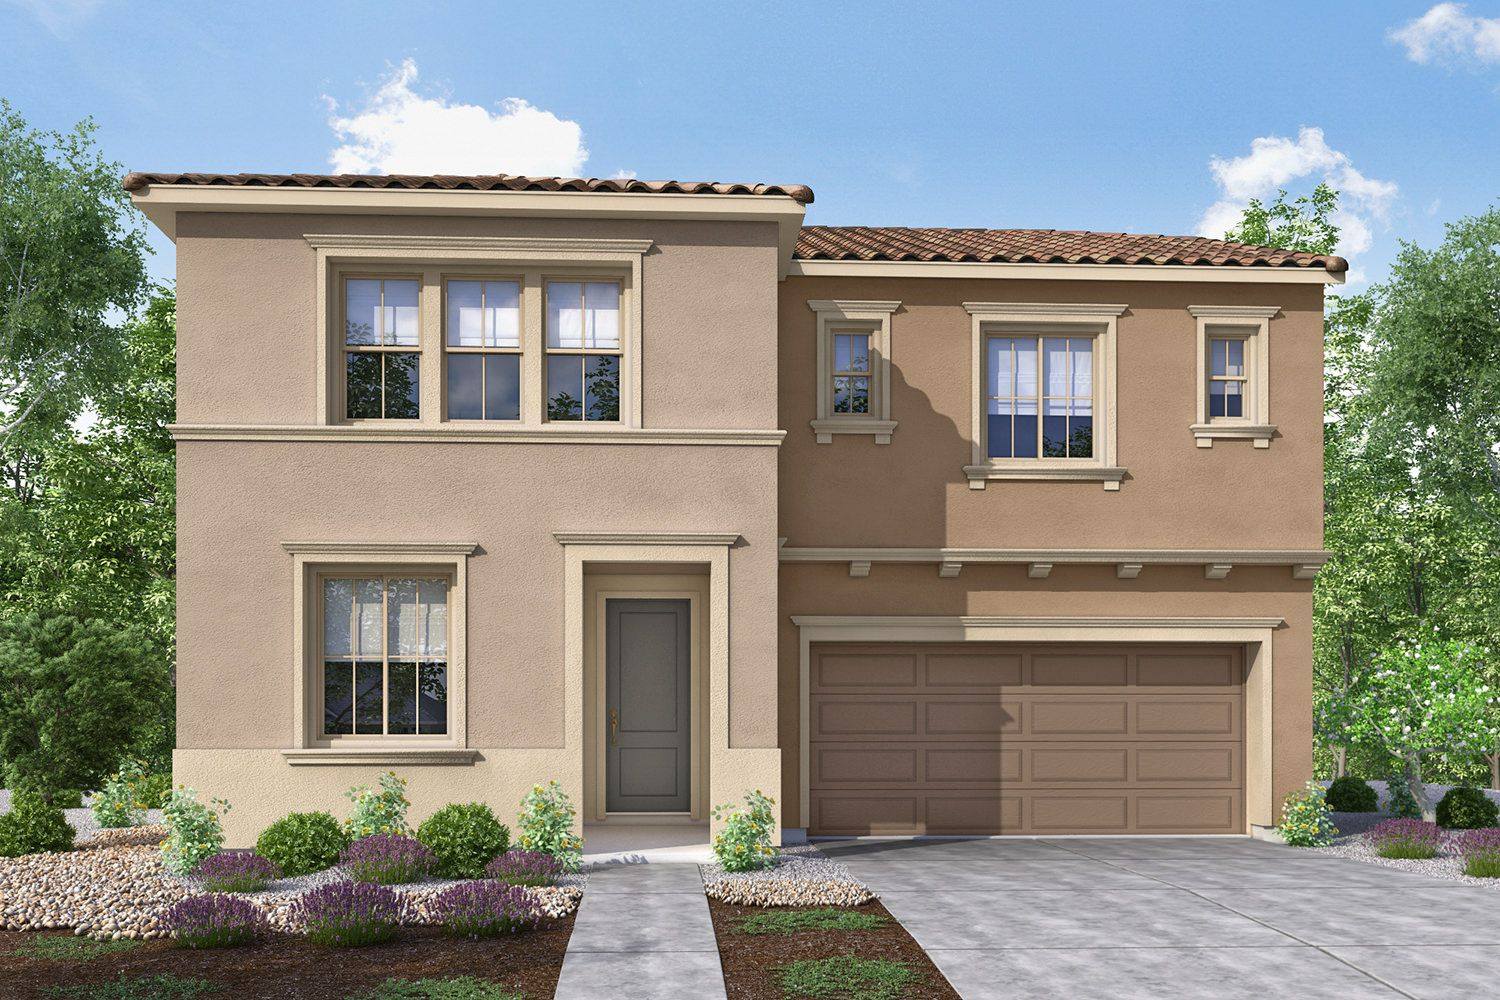 Lake Elsinore Homes For Sale Homes For Sale In Lake